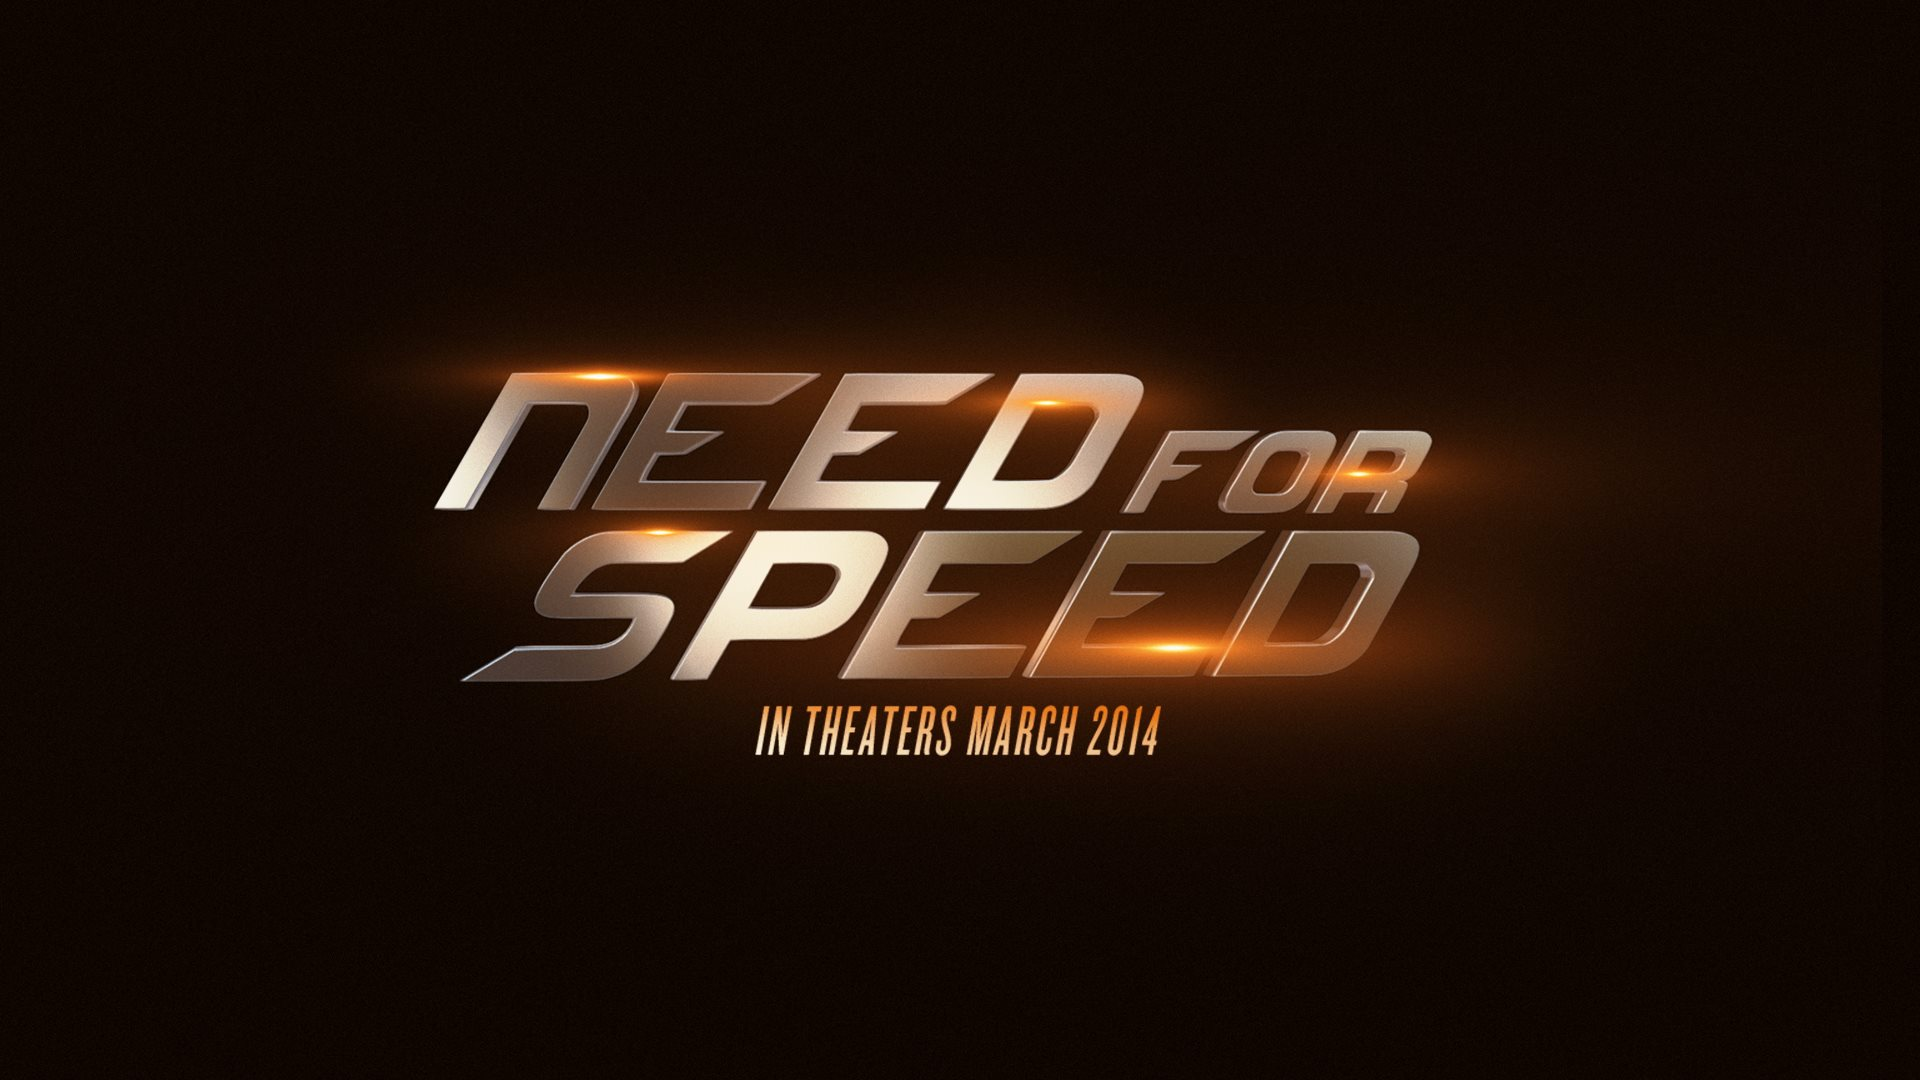 need for speed 2014 movie wallpapers 40 wallpapers hd wallpapers. Black Bedroom Furniture Sets. Home Design Ideas